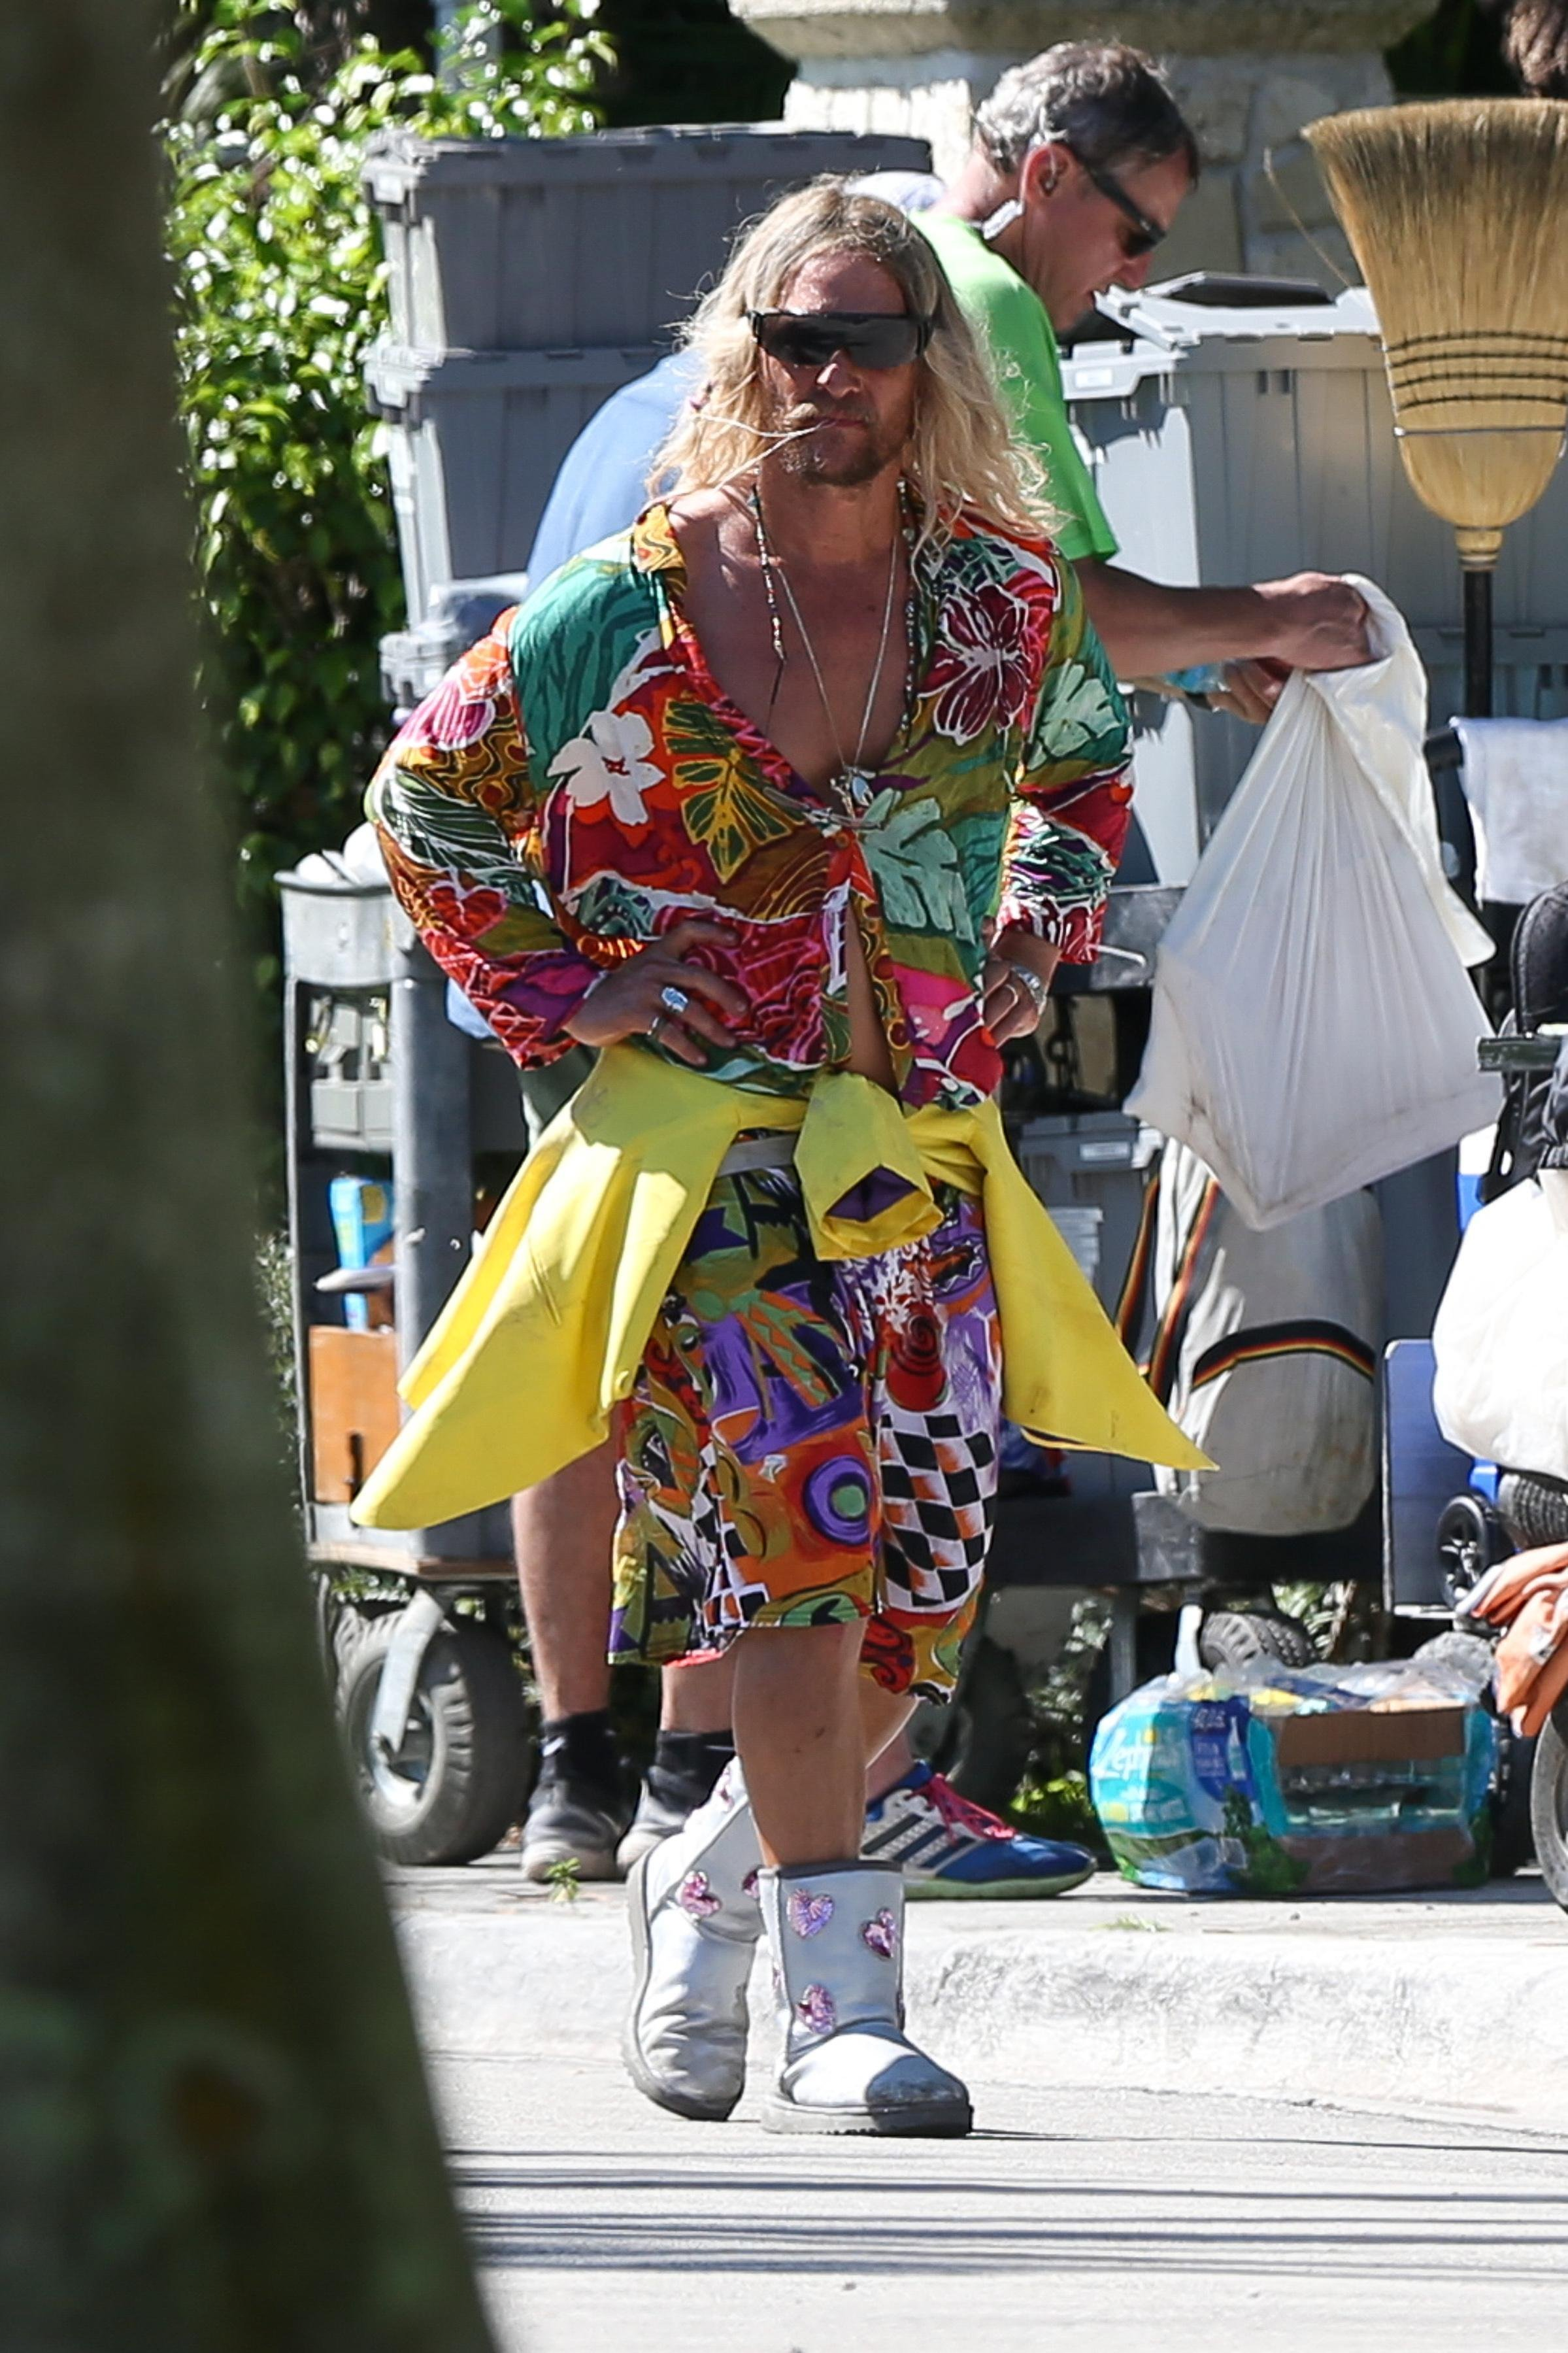 171947, EXCLUSIVE: Matthew McConaughey wears a loud outfit as he is seen in character filming scenes on the set of his last movie 'Beach Bum' in Miami Beach. Miami, Florida - Tuesday November 7, 2017., Image: 354884124, License: Rights-managed, Restrictions: , Model Release: no, Credit line: Profimedia, Pacific coast news